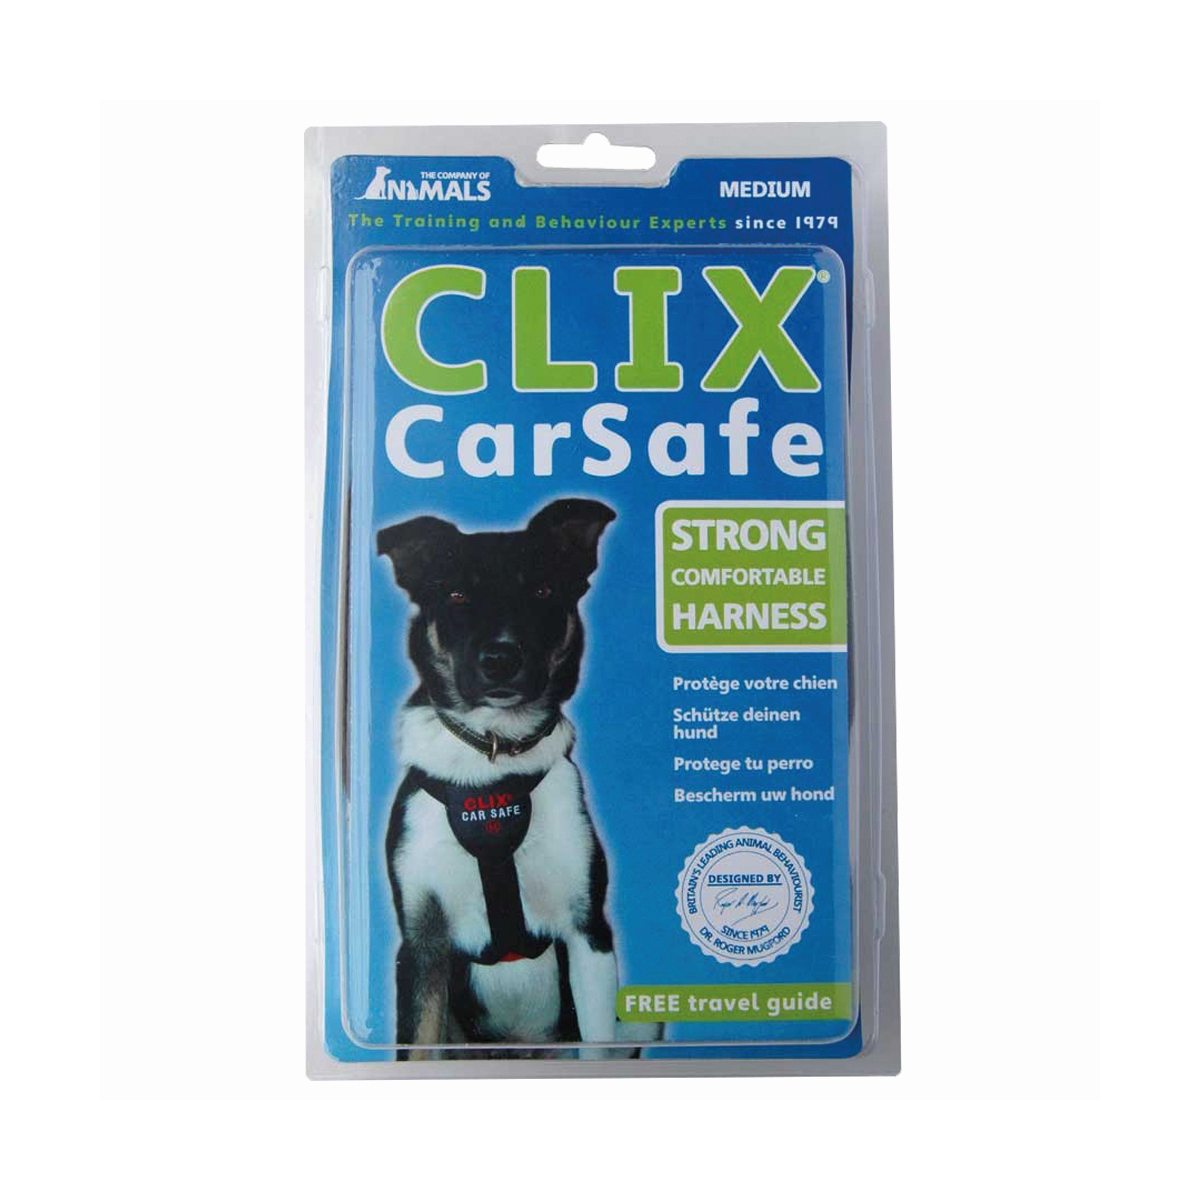 CLIX CAR SAFE HARNESS MED 00001